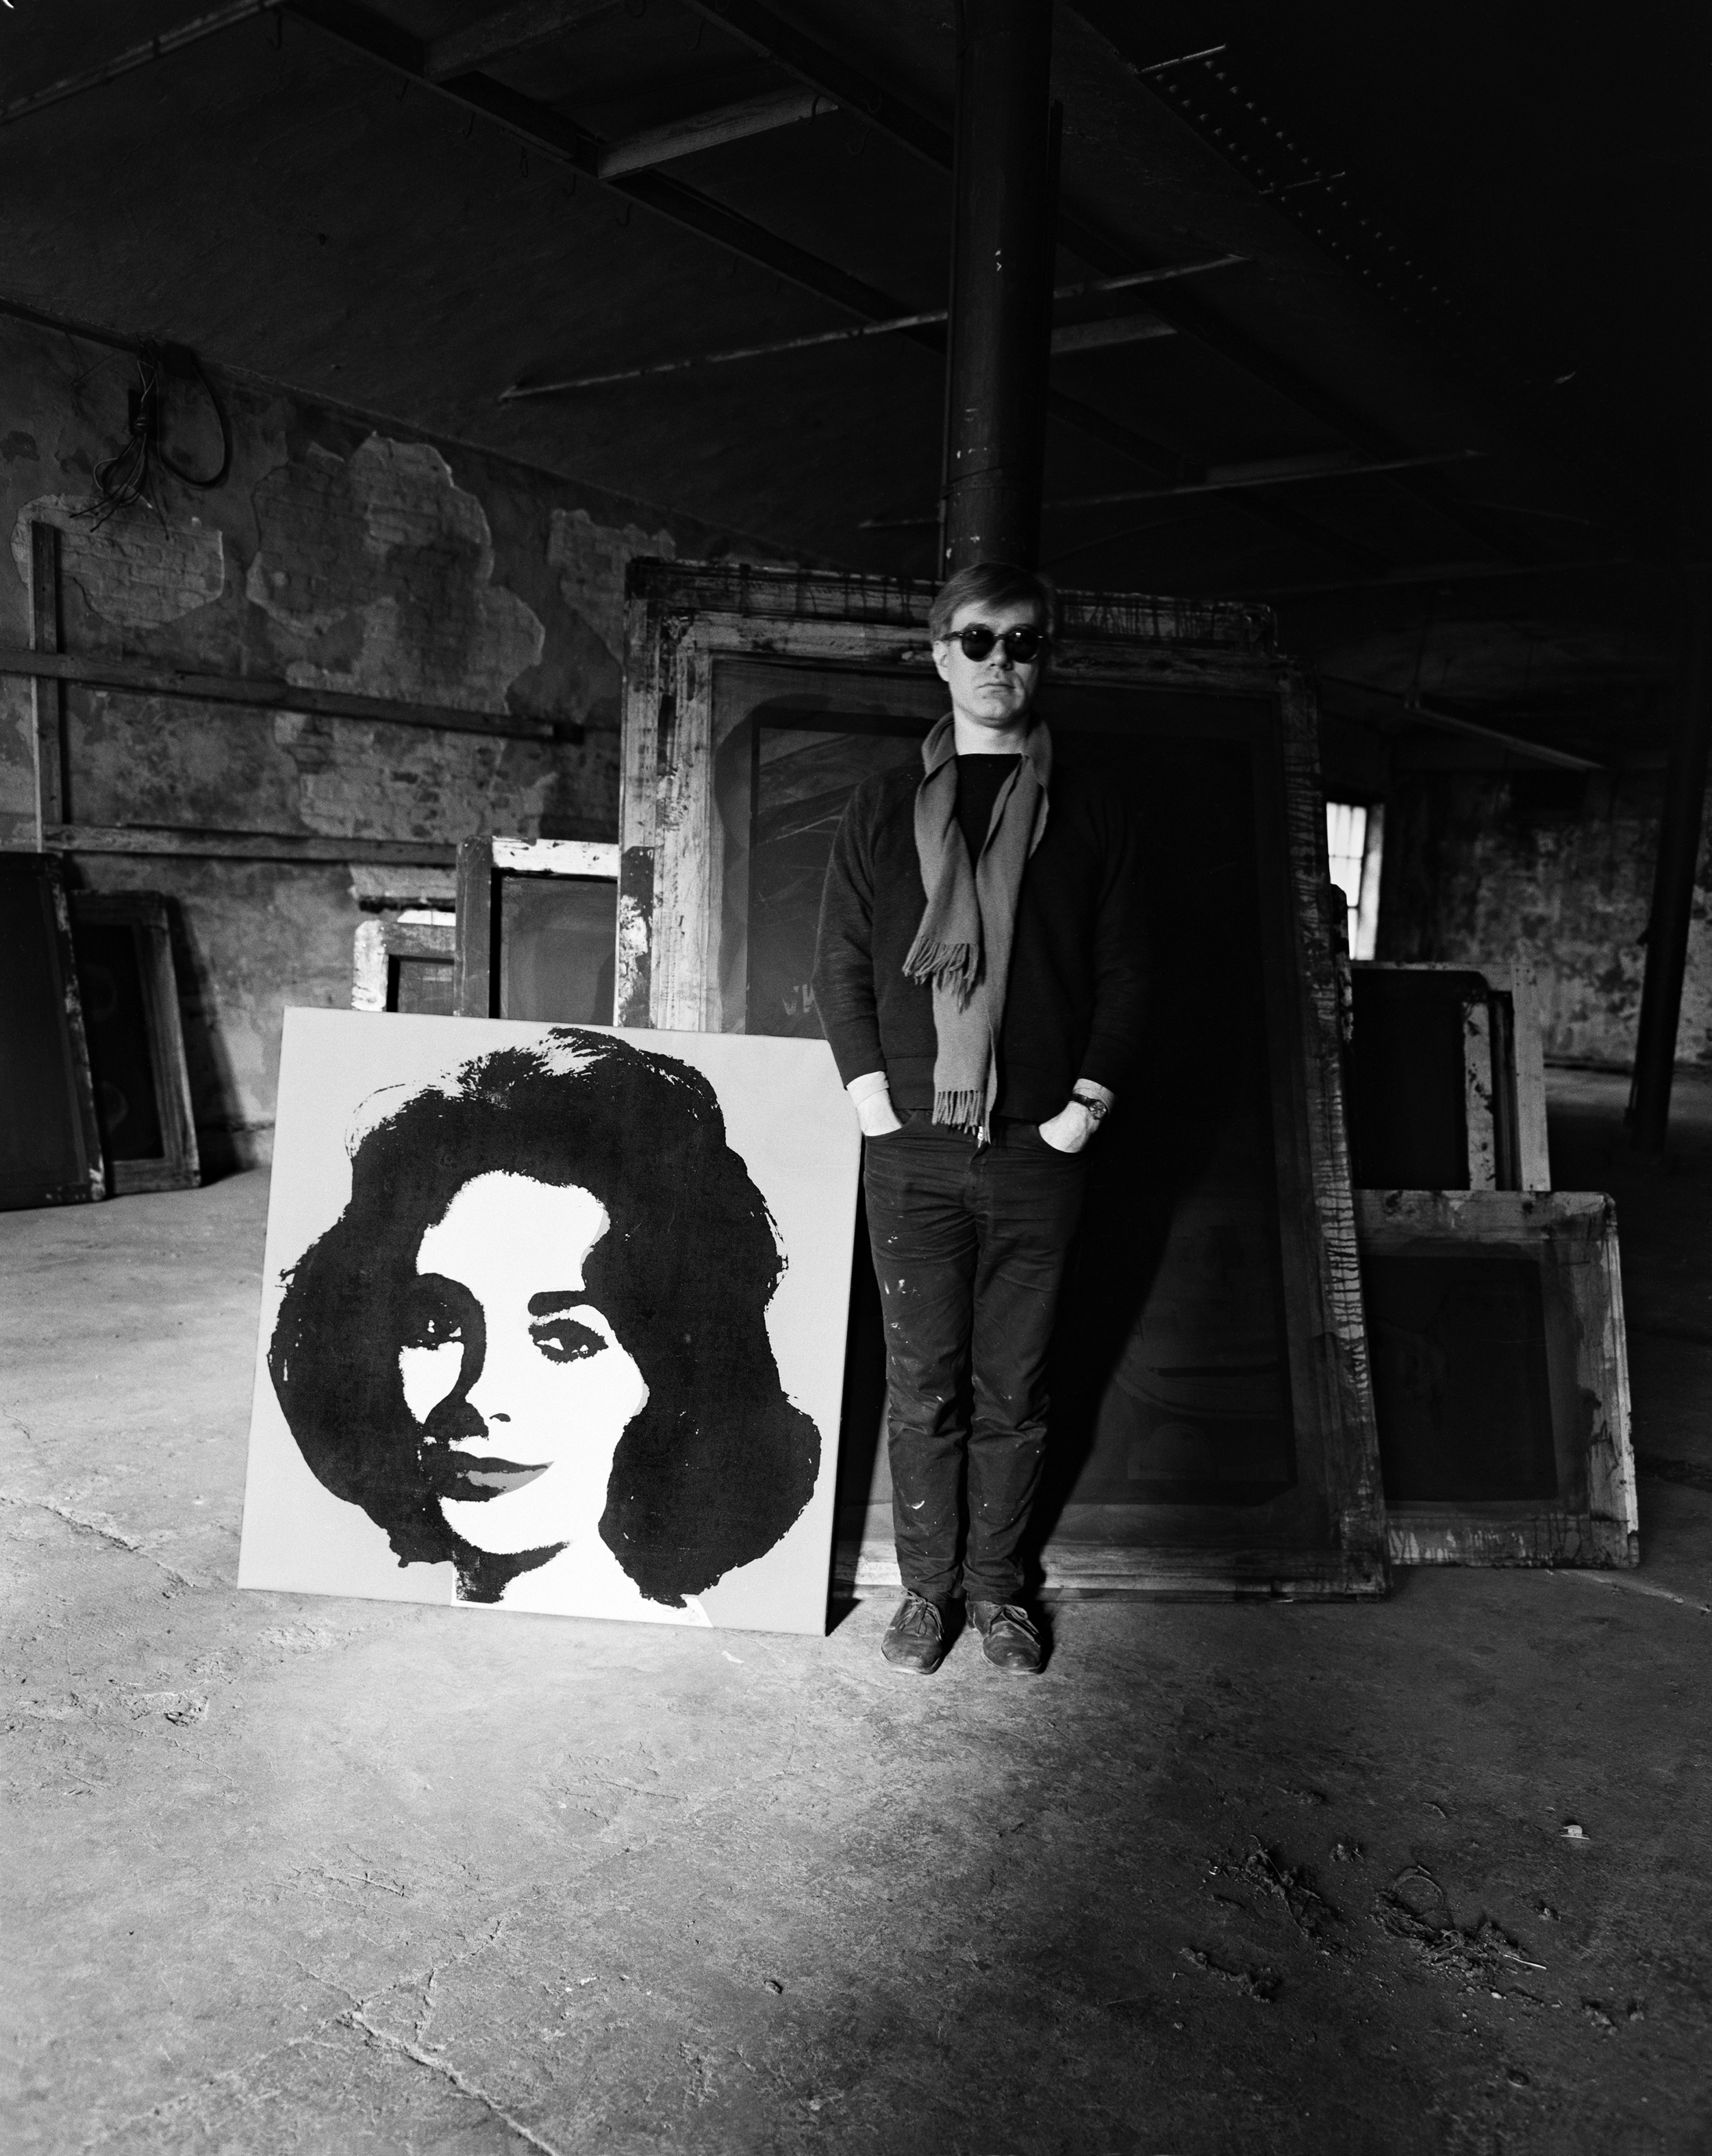 Evelyn Hofer,  Andy Warhol standing in the factory with a Liz painting and several screens in the background , January 29, 1964, gelatin silver print, 14 x 11 in. The Andy Warhol Museum, Pittsburgh; Founding Collection, Contribution The Andy Warhol Foundation for the Visual Arts, Inc, TC31.115..8. Image provided by the estate of Evelyn Hofer